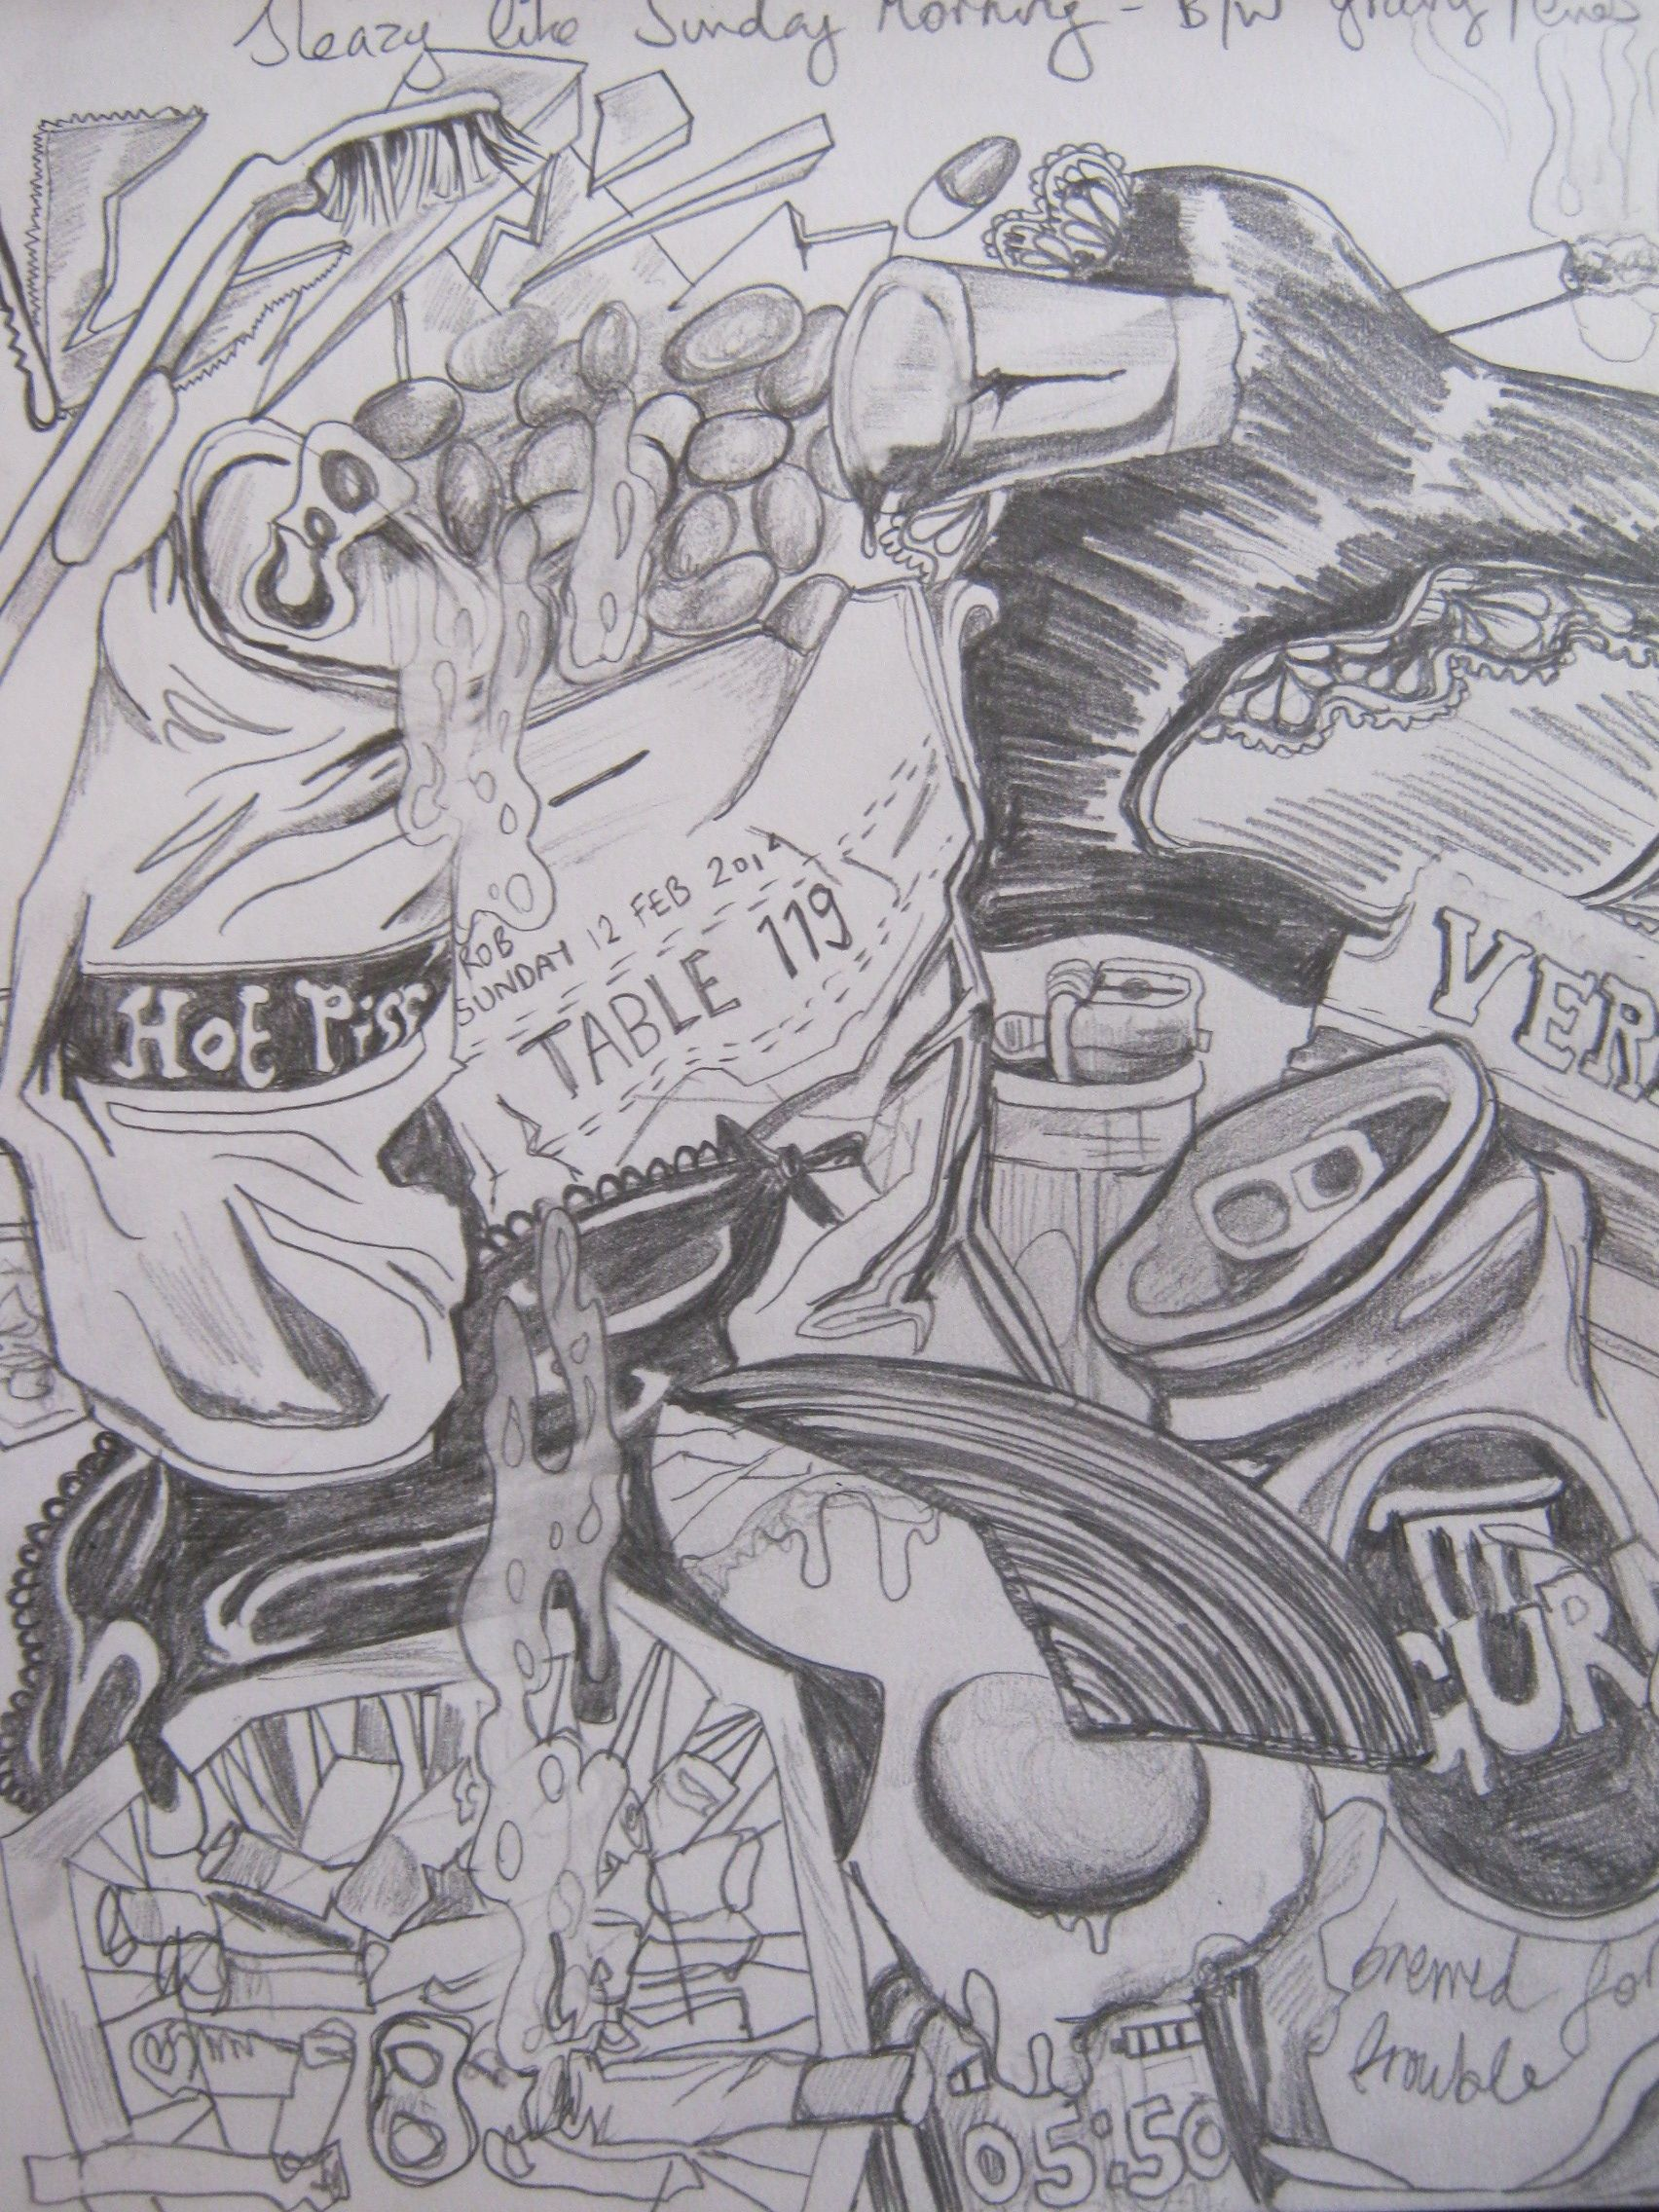 Sketchbook page pencil sketch for monochrome t shirt print sleazy like sunday morning